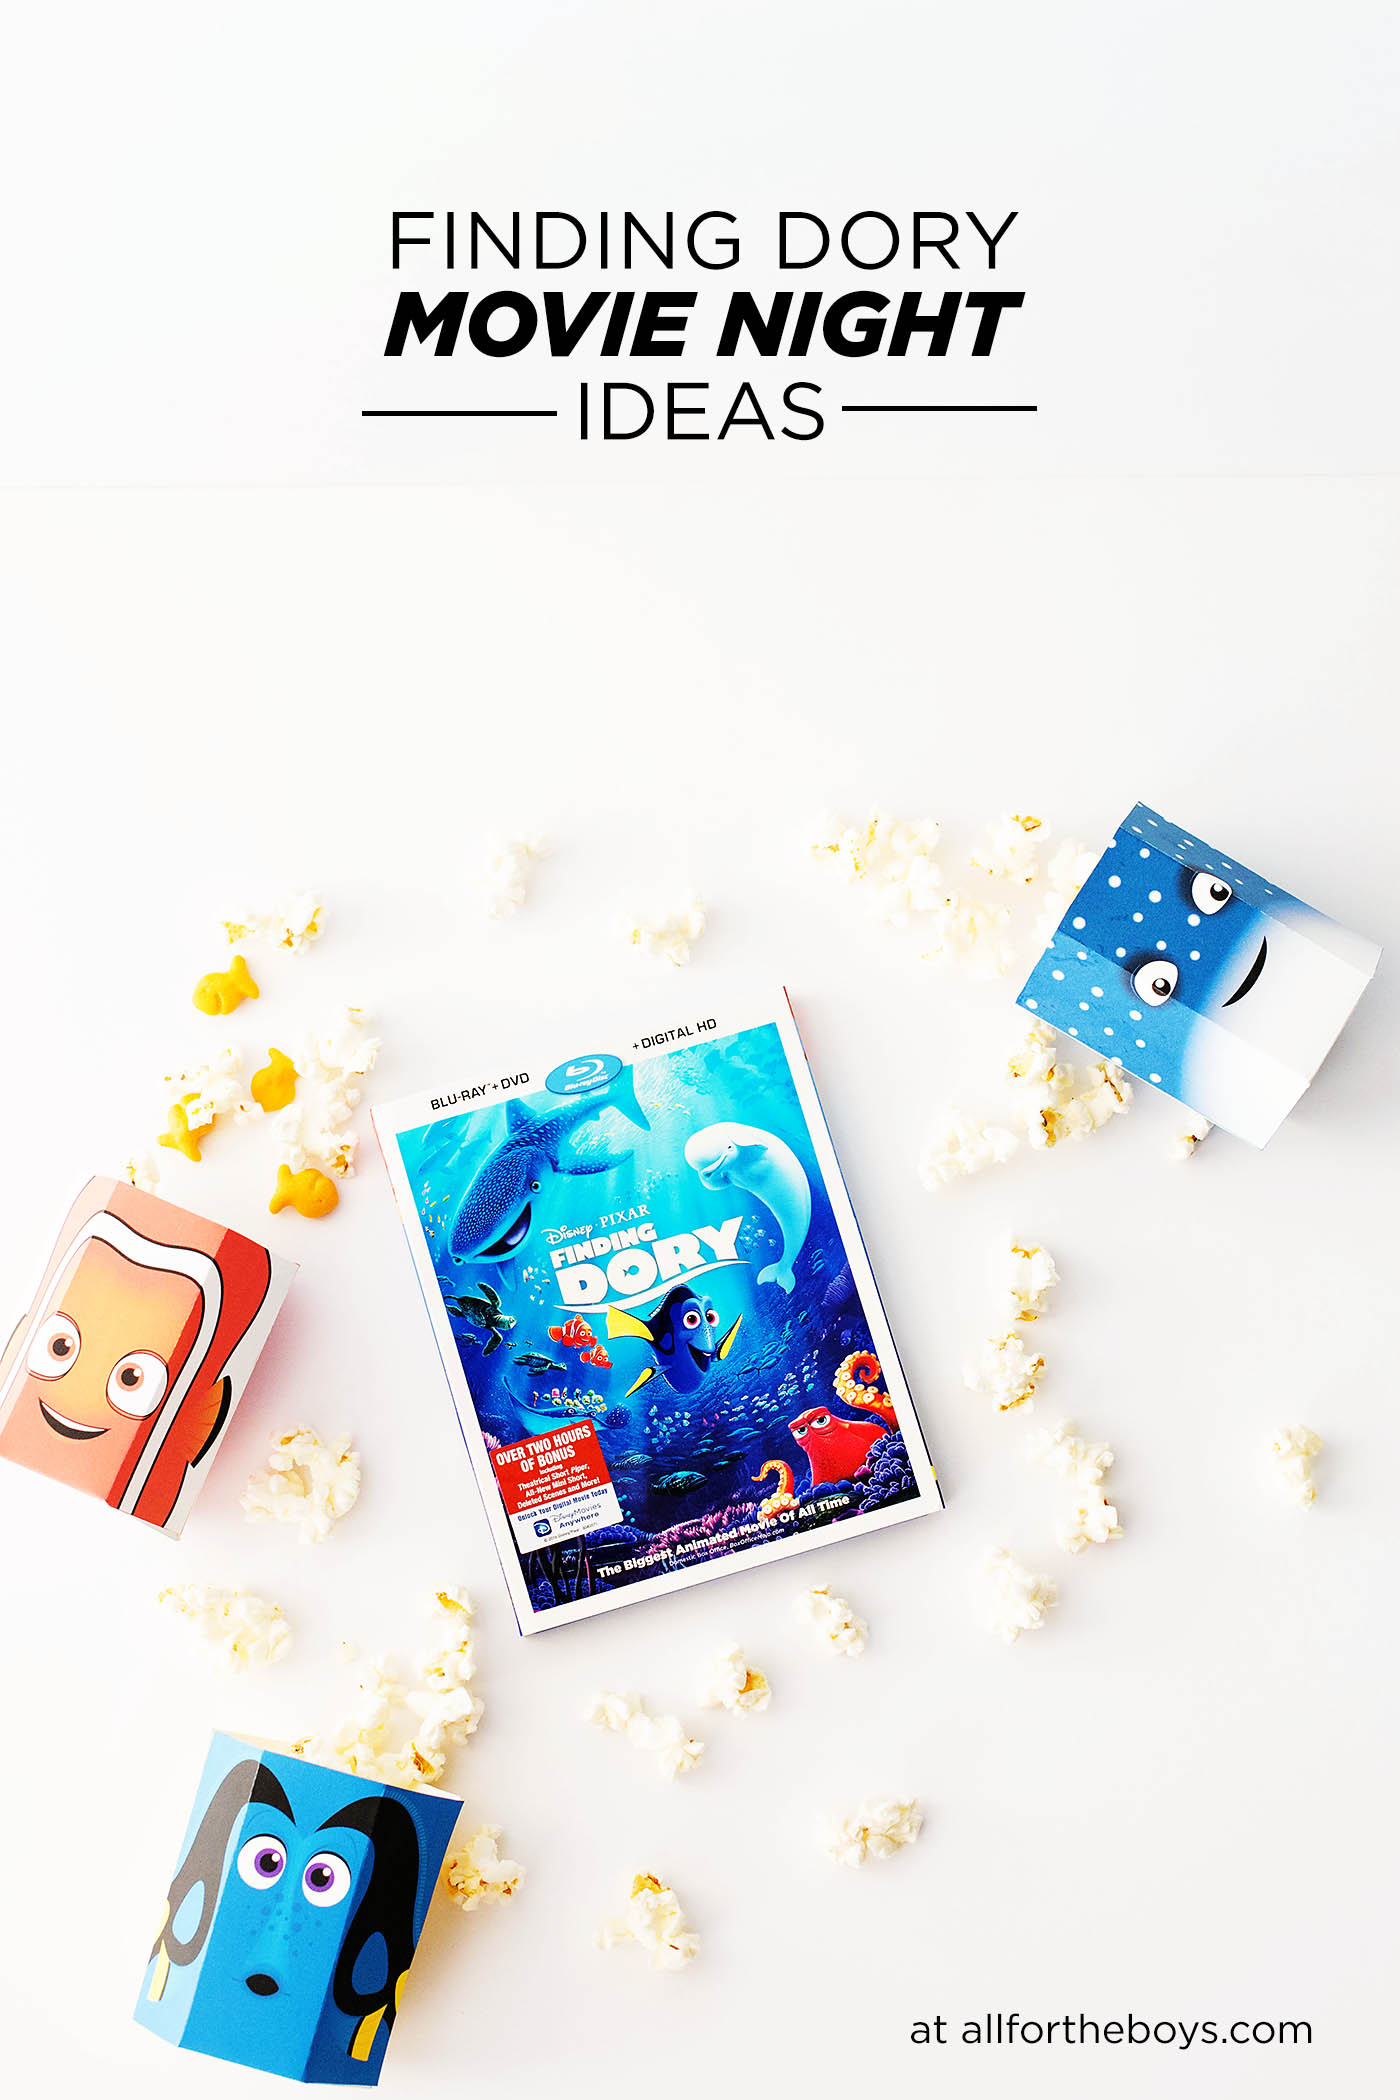 Finding Dory Movie Night Ideas